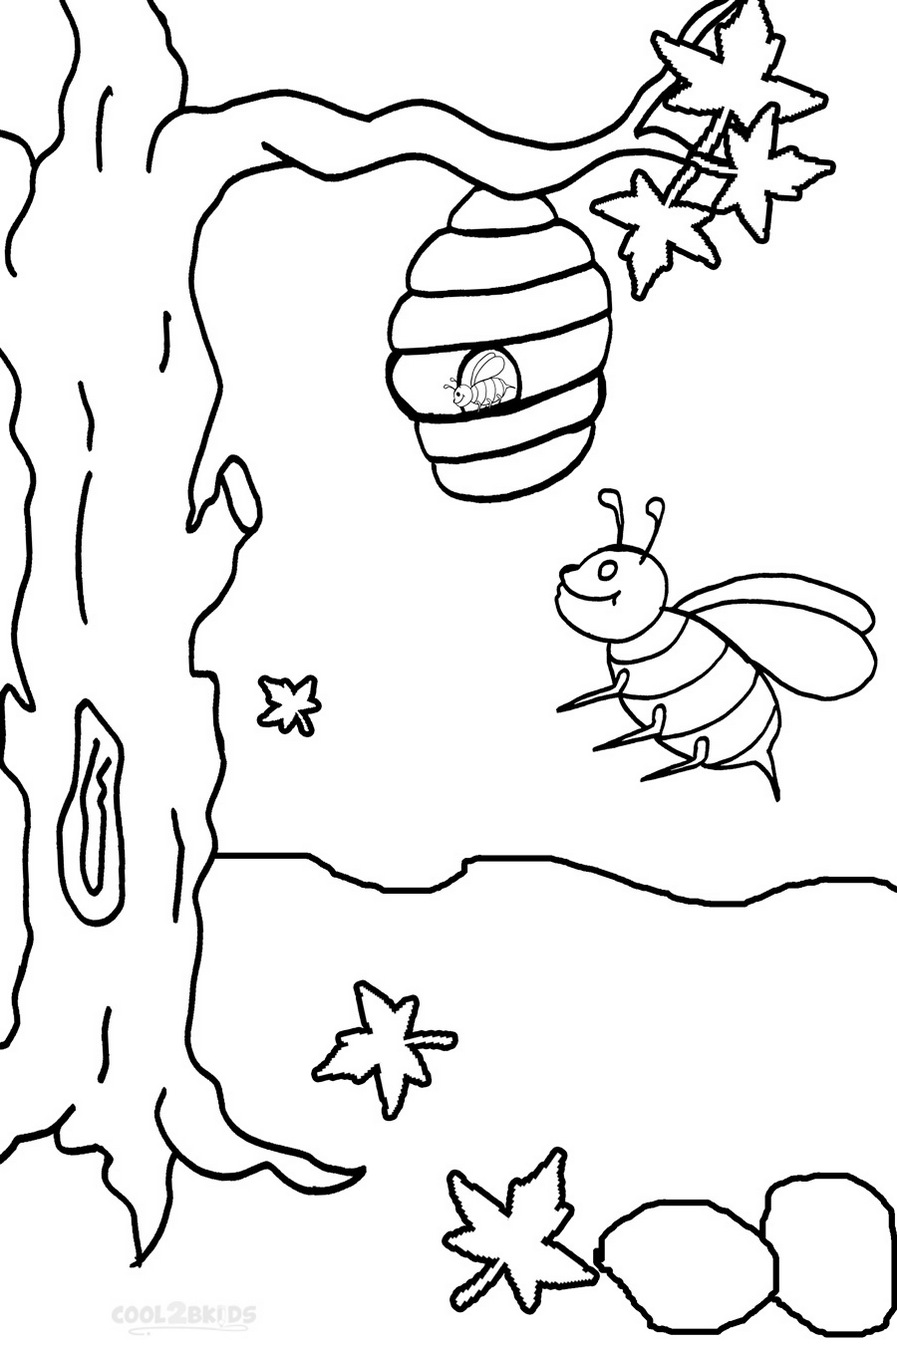 Busy-Bee-Print-out-drawing